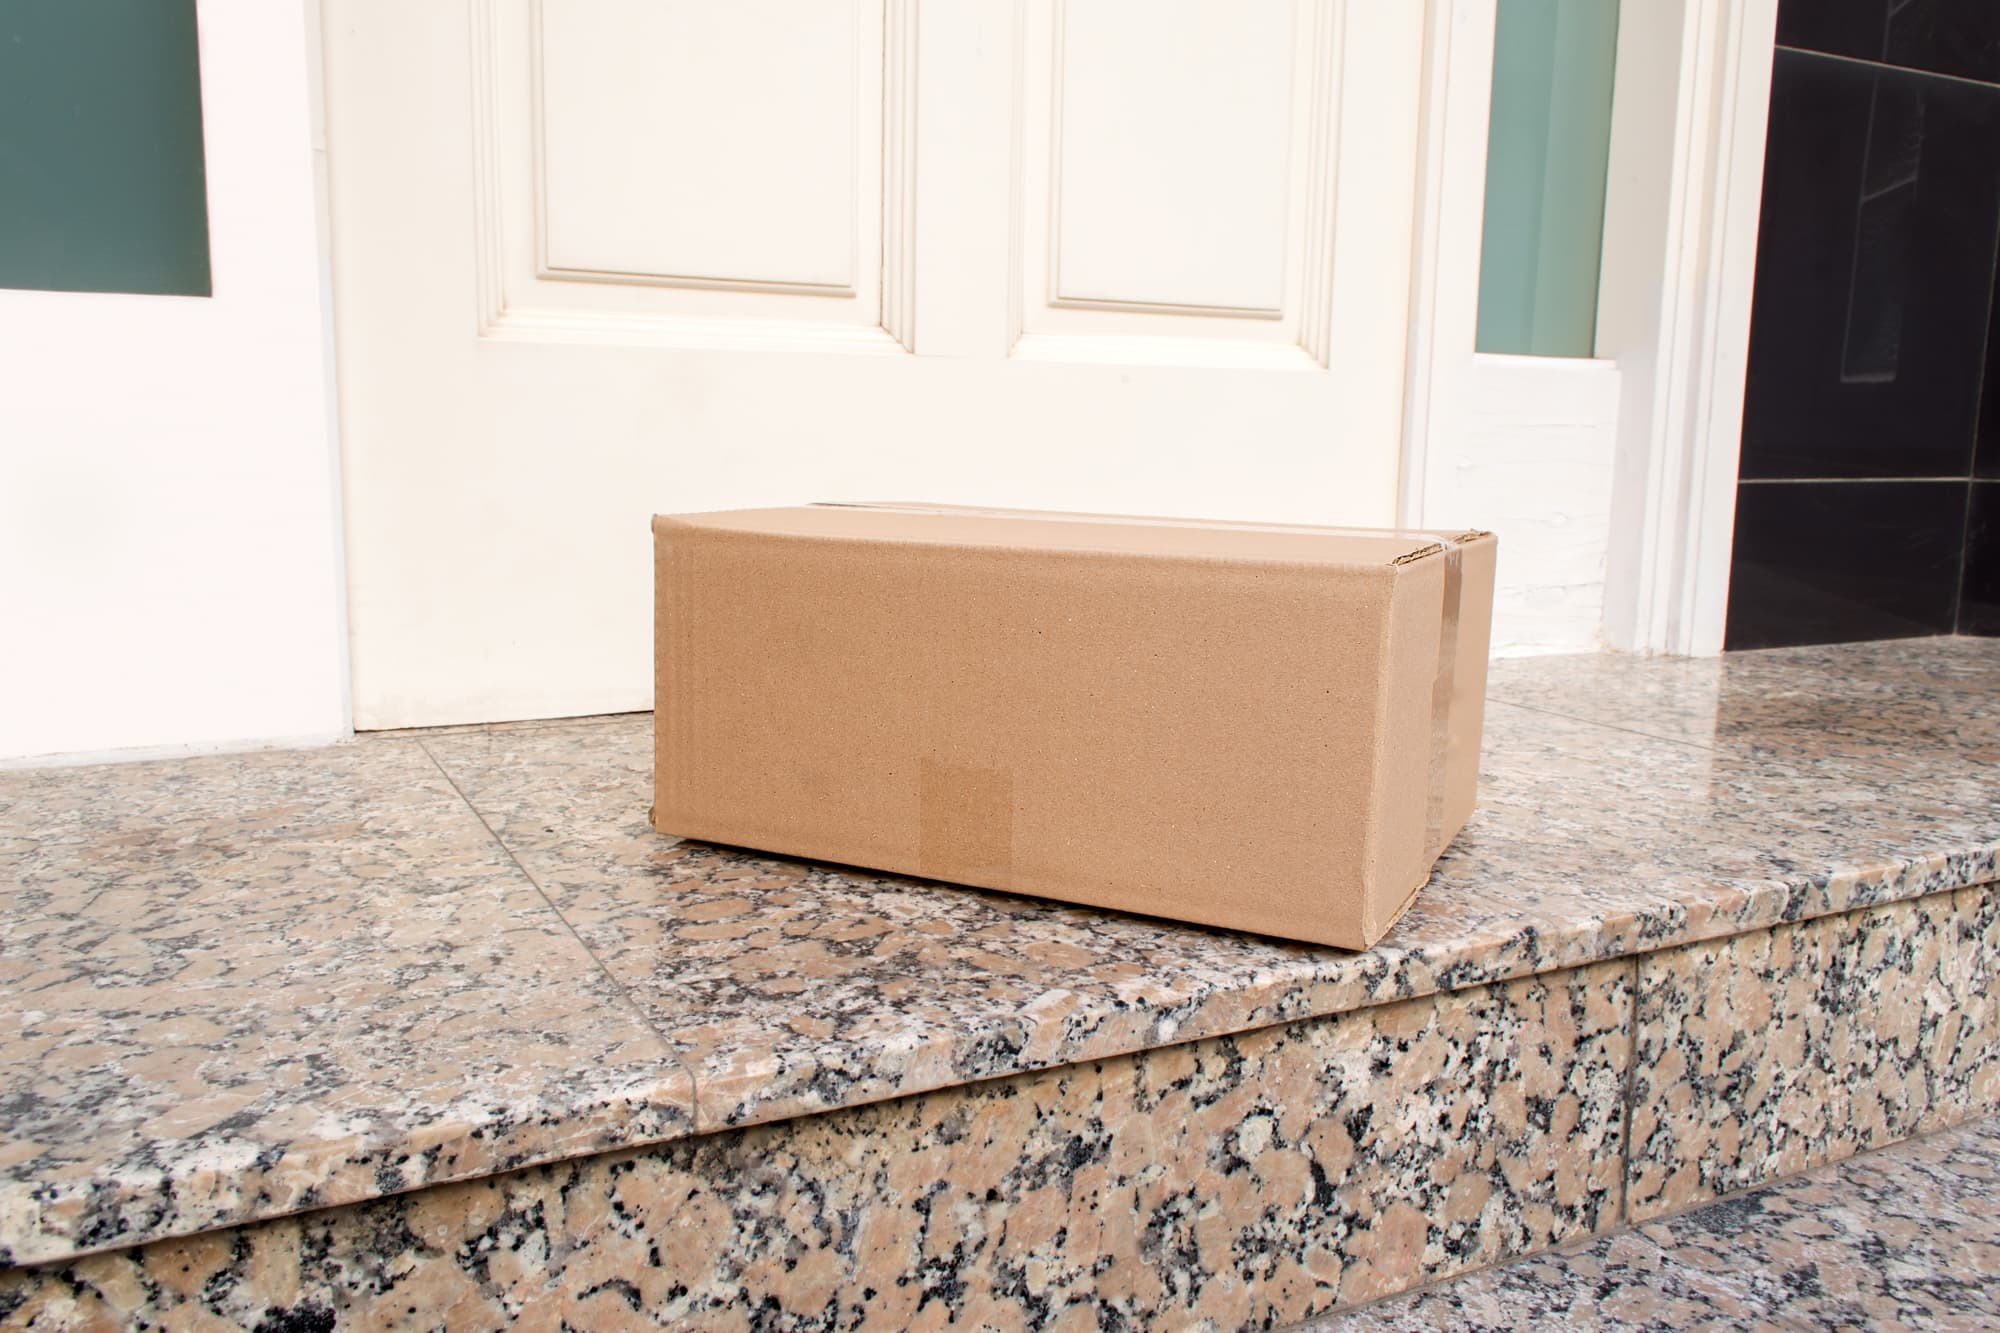 \u0027Porch pirates\u0027 stealing people\u0027s holiday deliveries & Porch pirates\u0027 stealing people\u0027s holiday deliveries